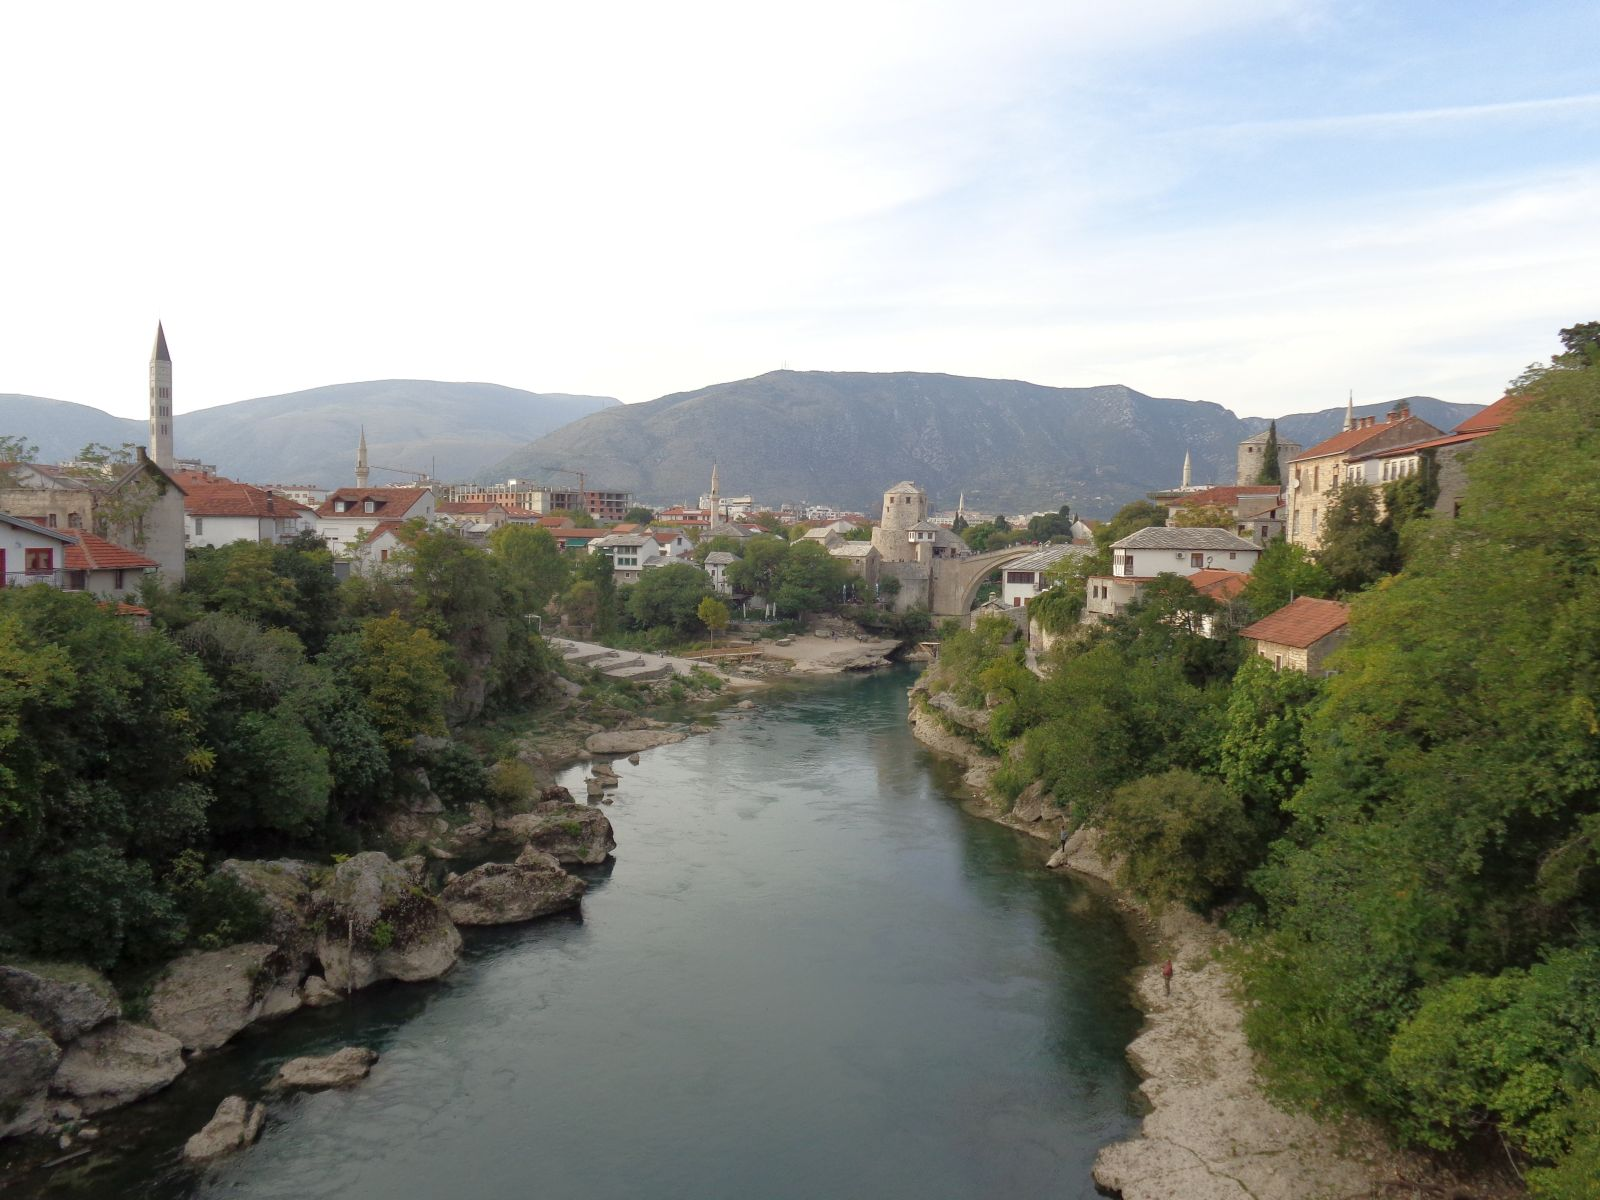 -images-excursions-mostar-tour--mostar-tour-09.jpg